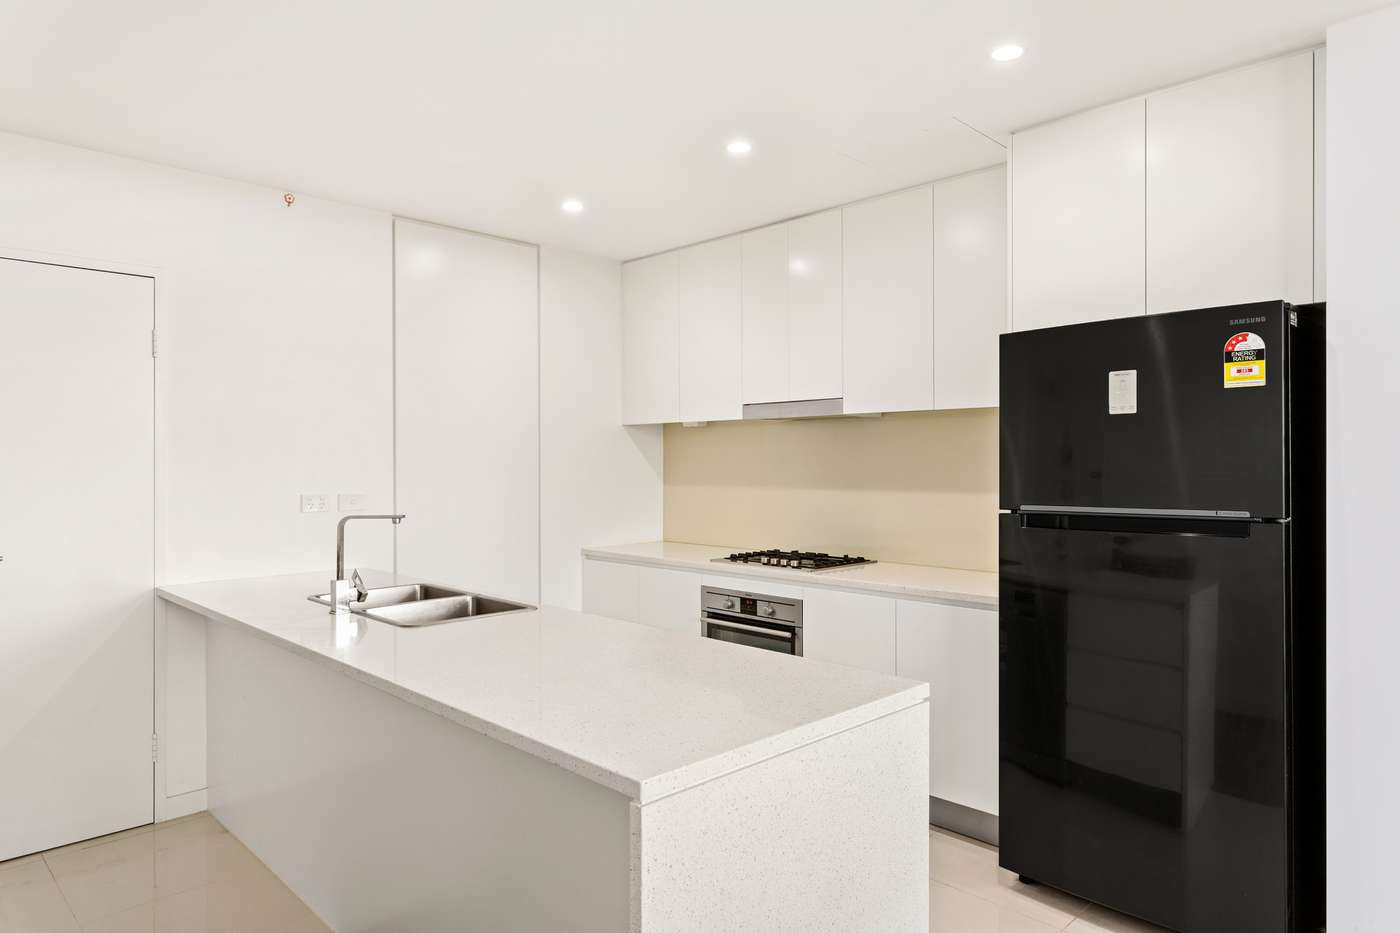 Main view of Homely apartment listing, 62/235 Homebush Road, Strathfield, NSW 2135